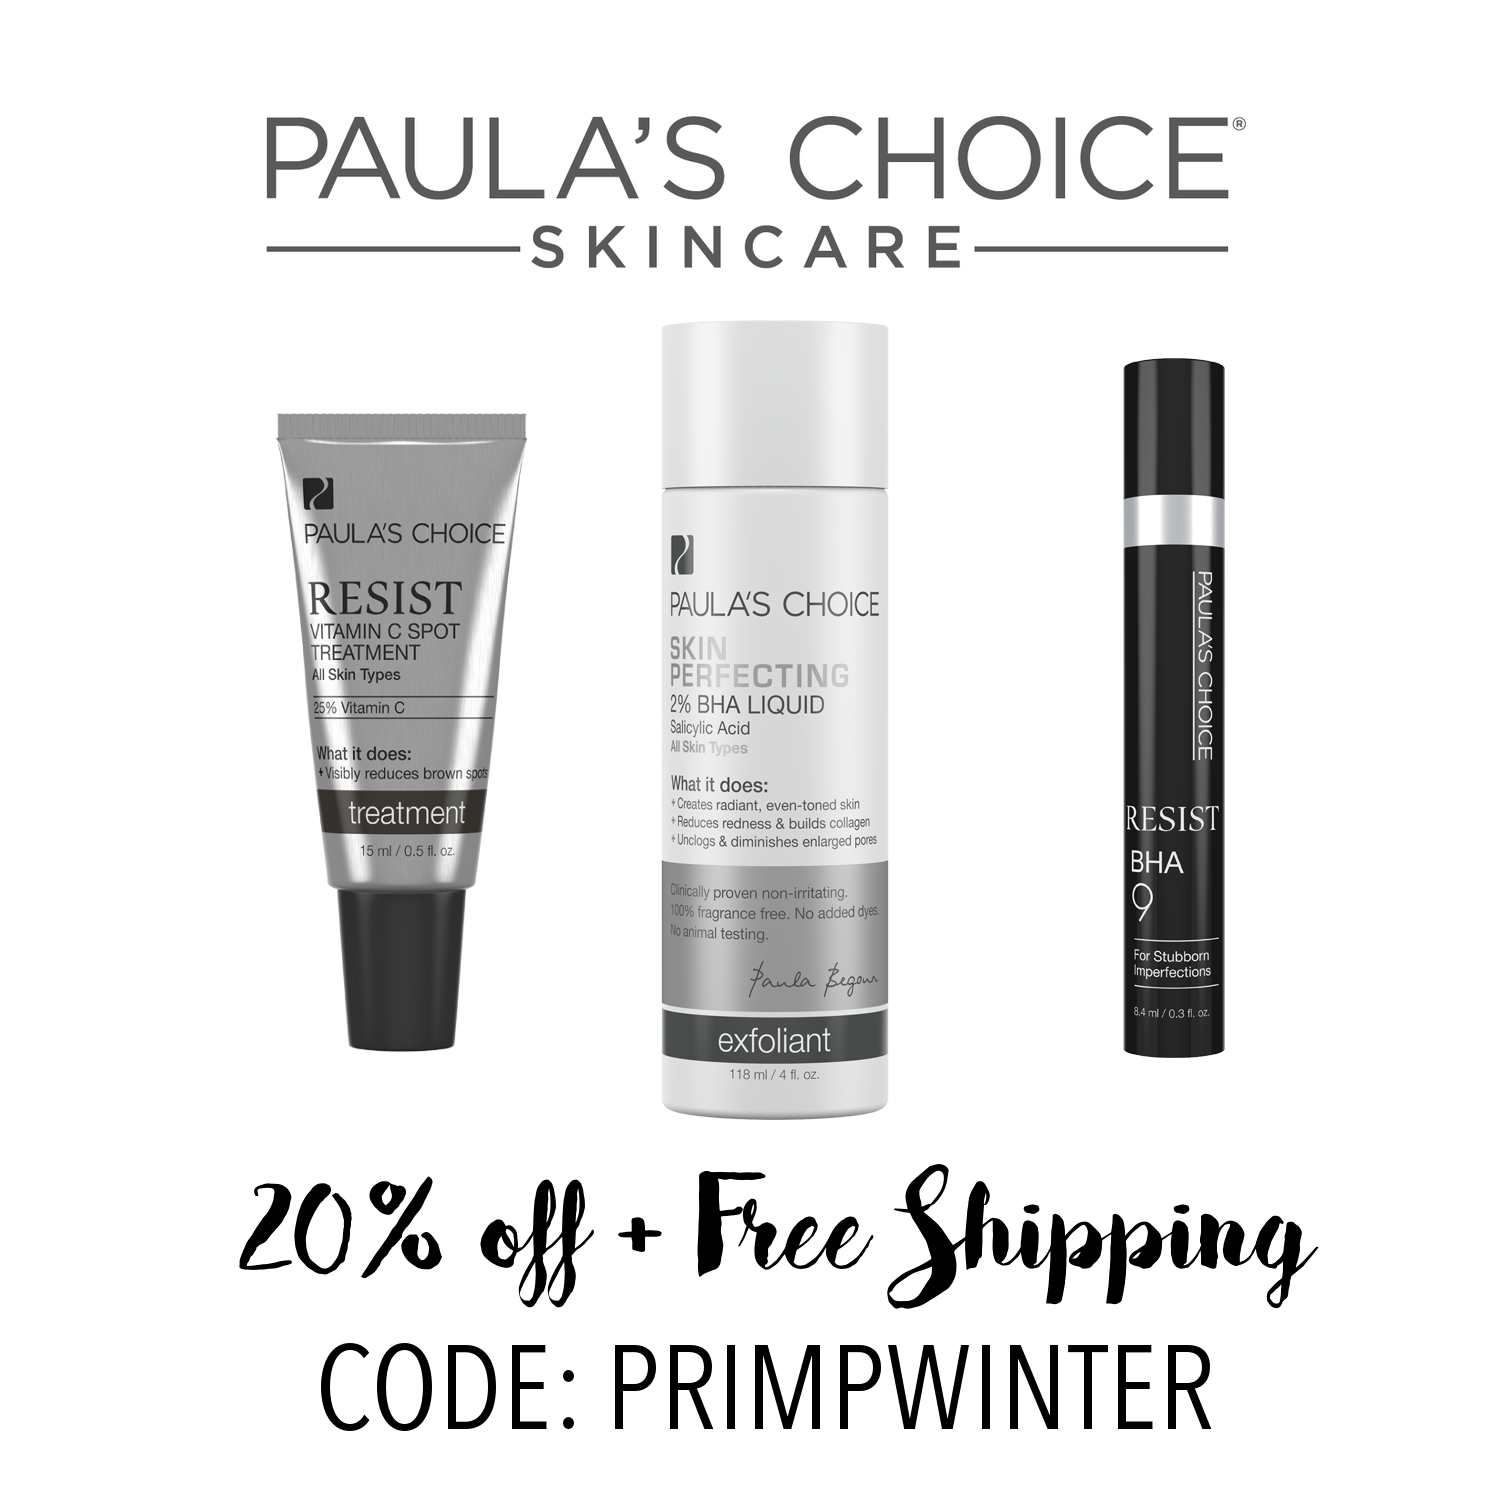 Paulas choice coupon codes